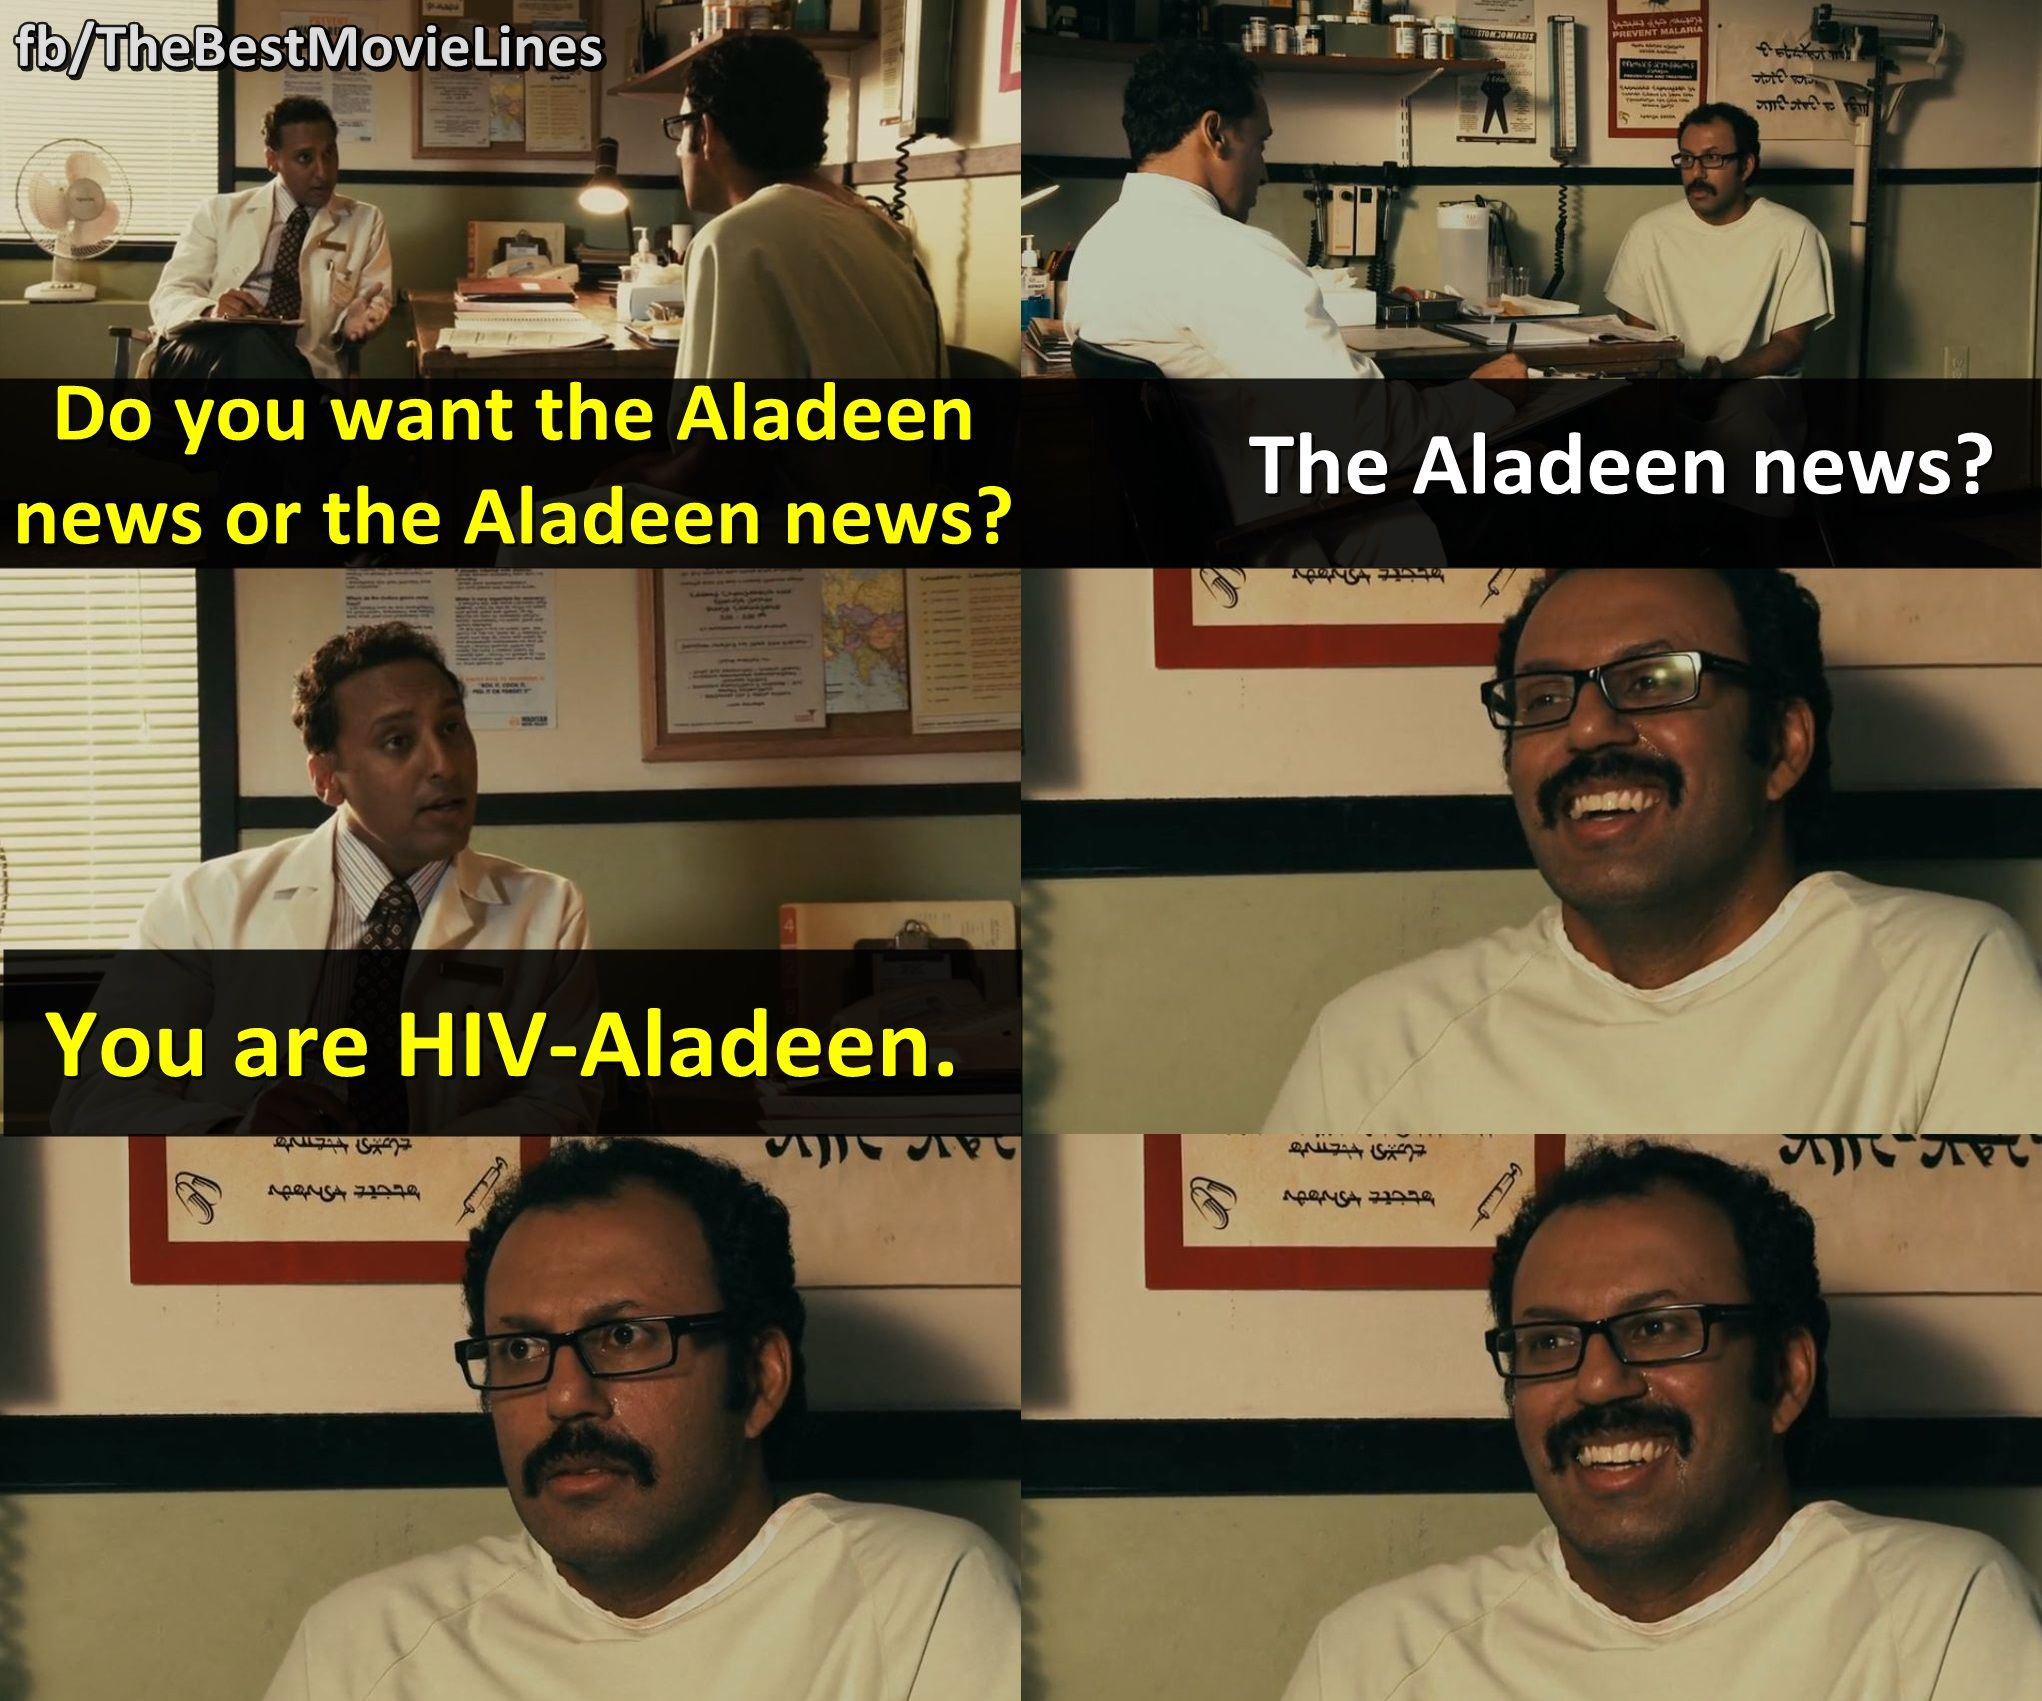 The Aladeen News D The Dictator 2012 Sacha Baron Cohen Anna Faris Ben Kingsley Best Movie Lines Movie Lines Good Movies